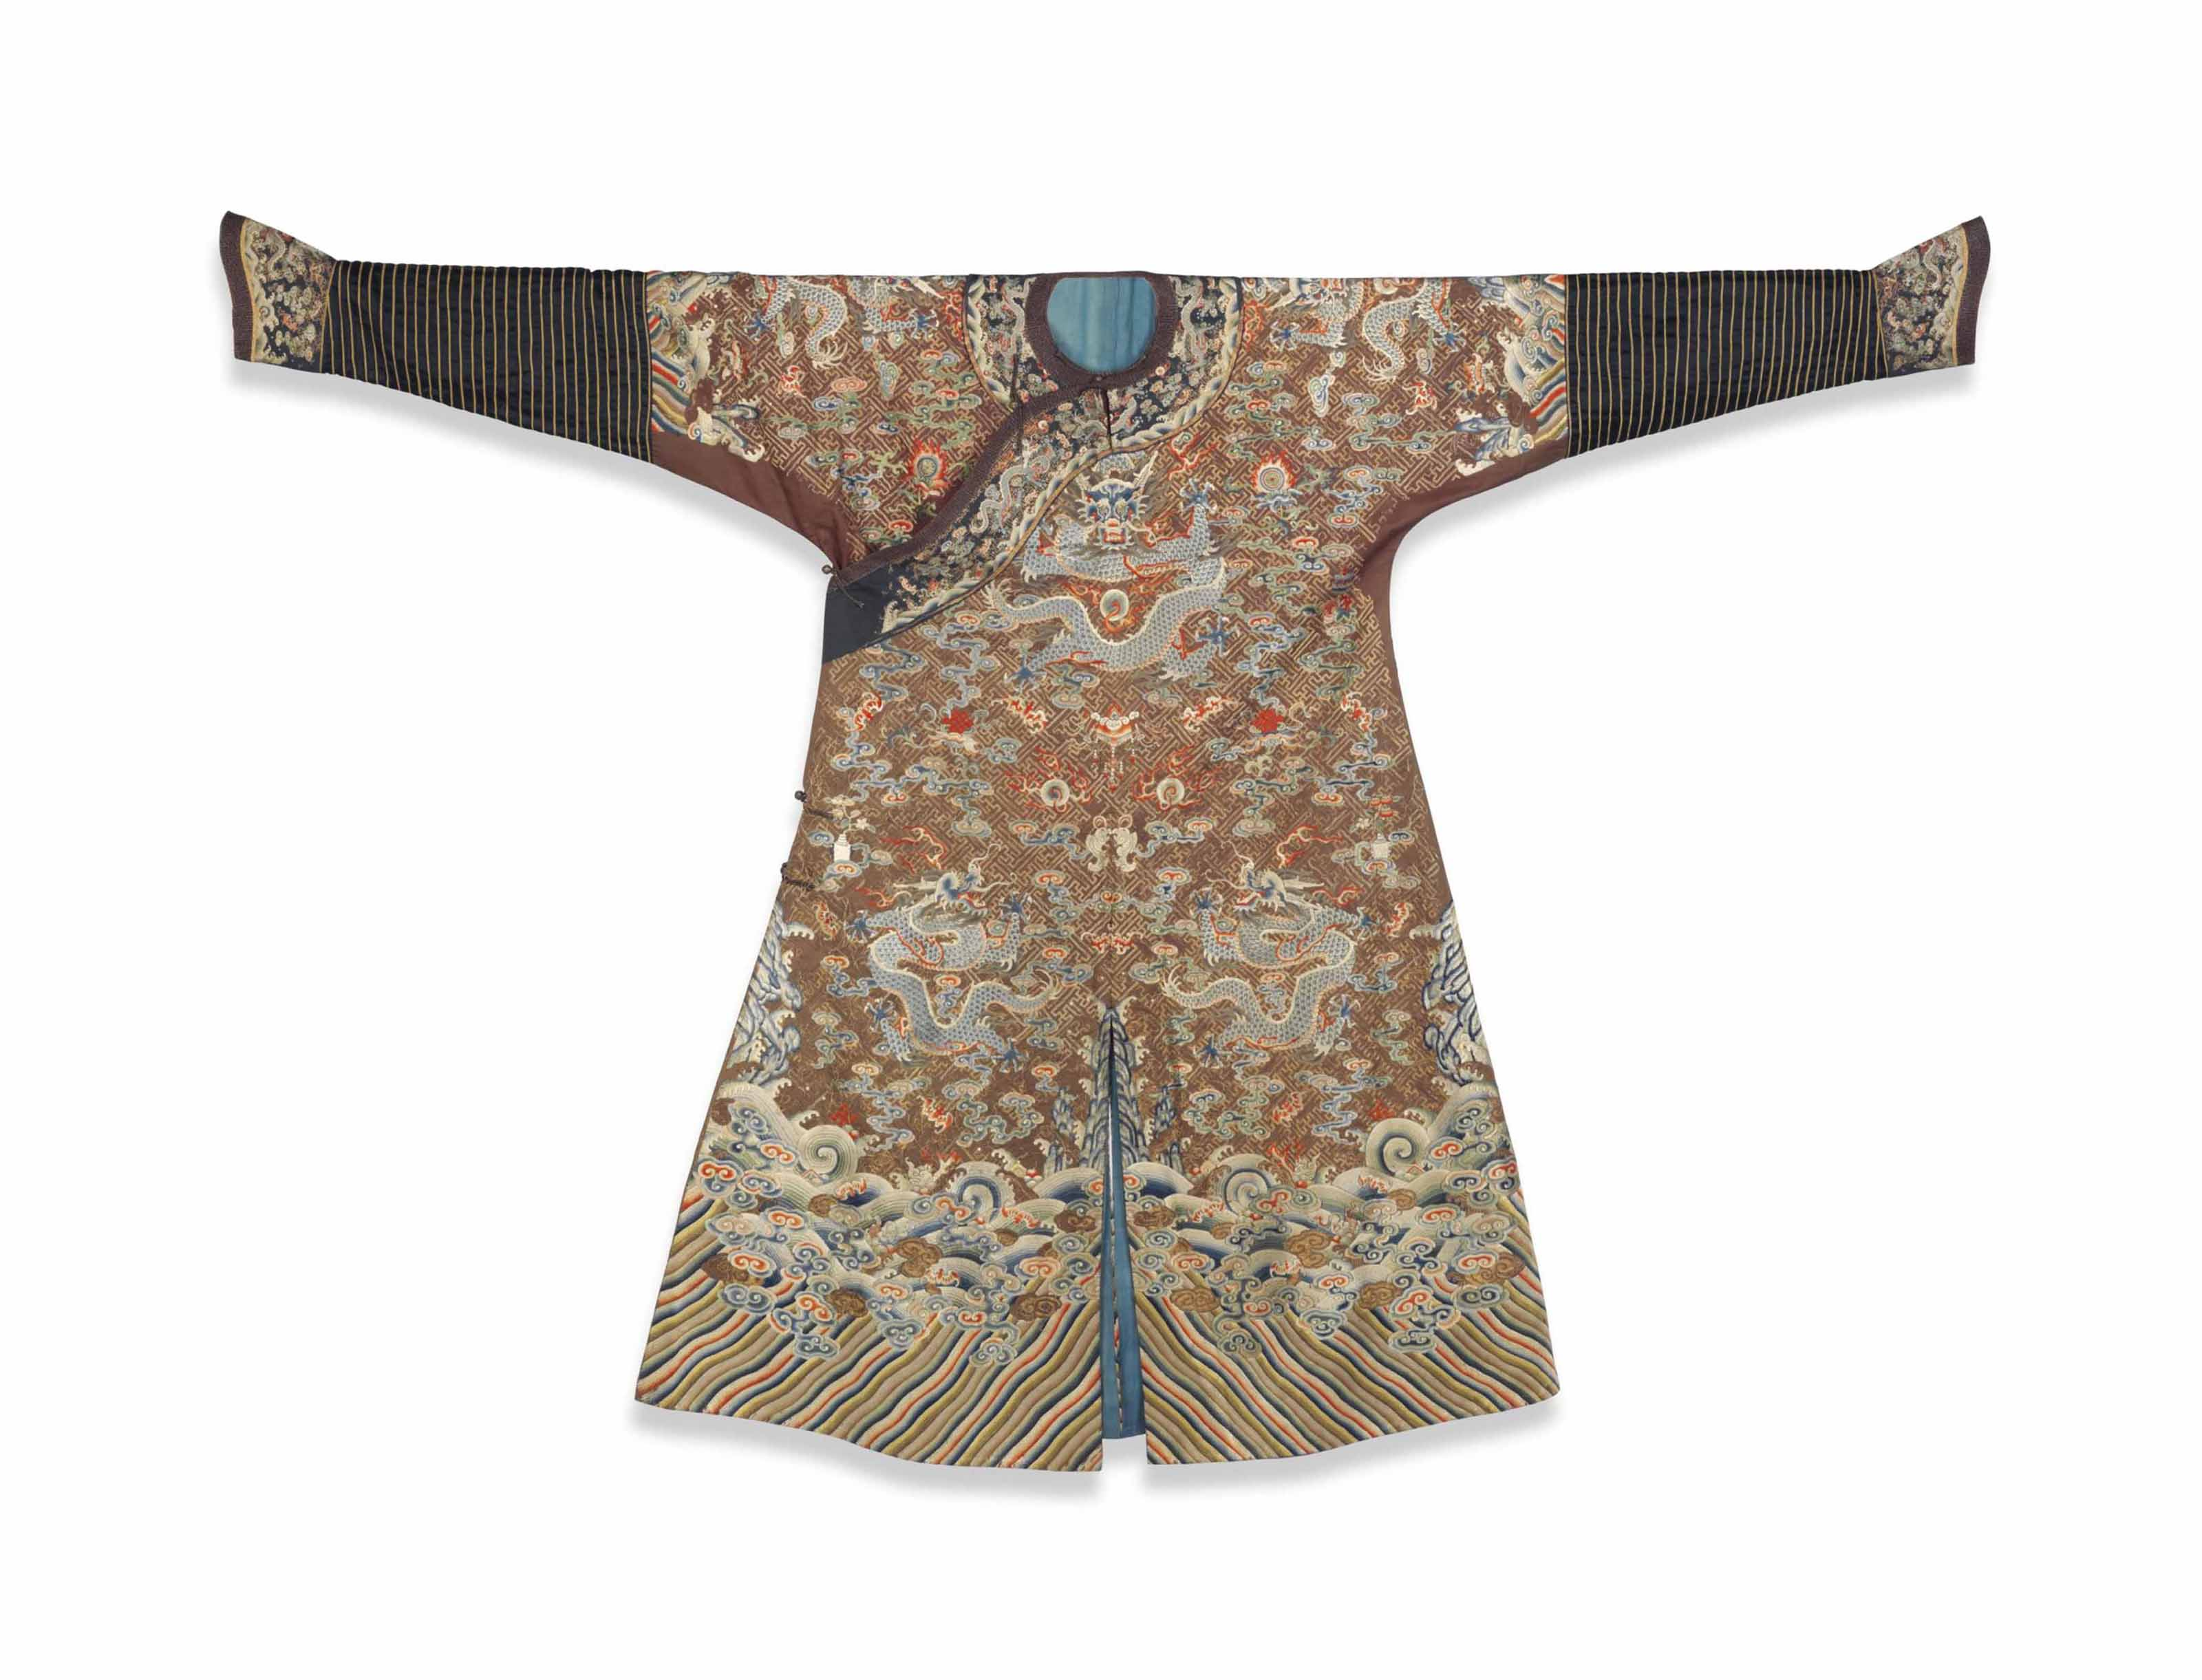 A BROWN FORMAL COURT ROBE FOR